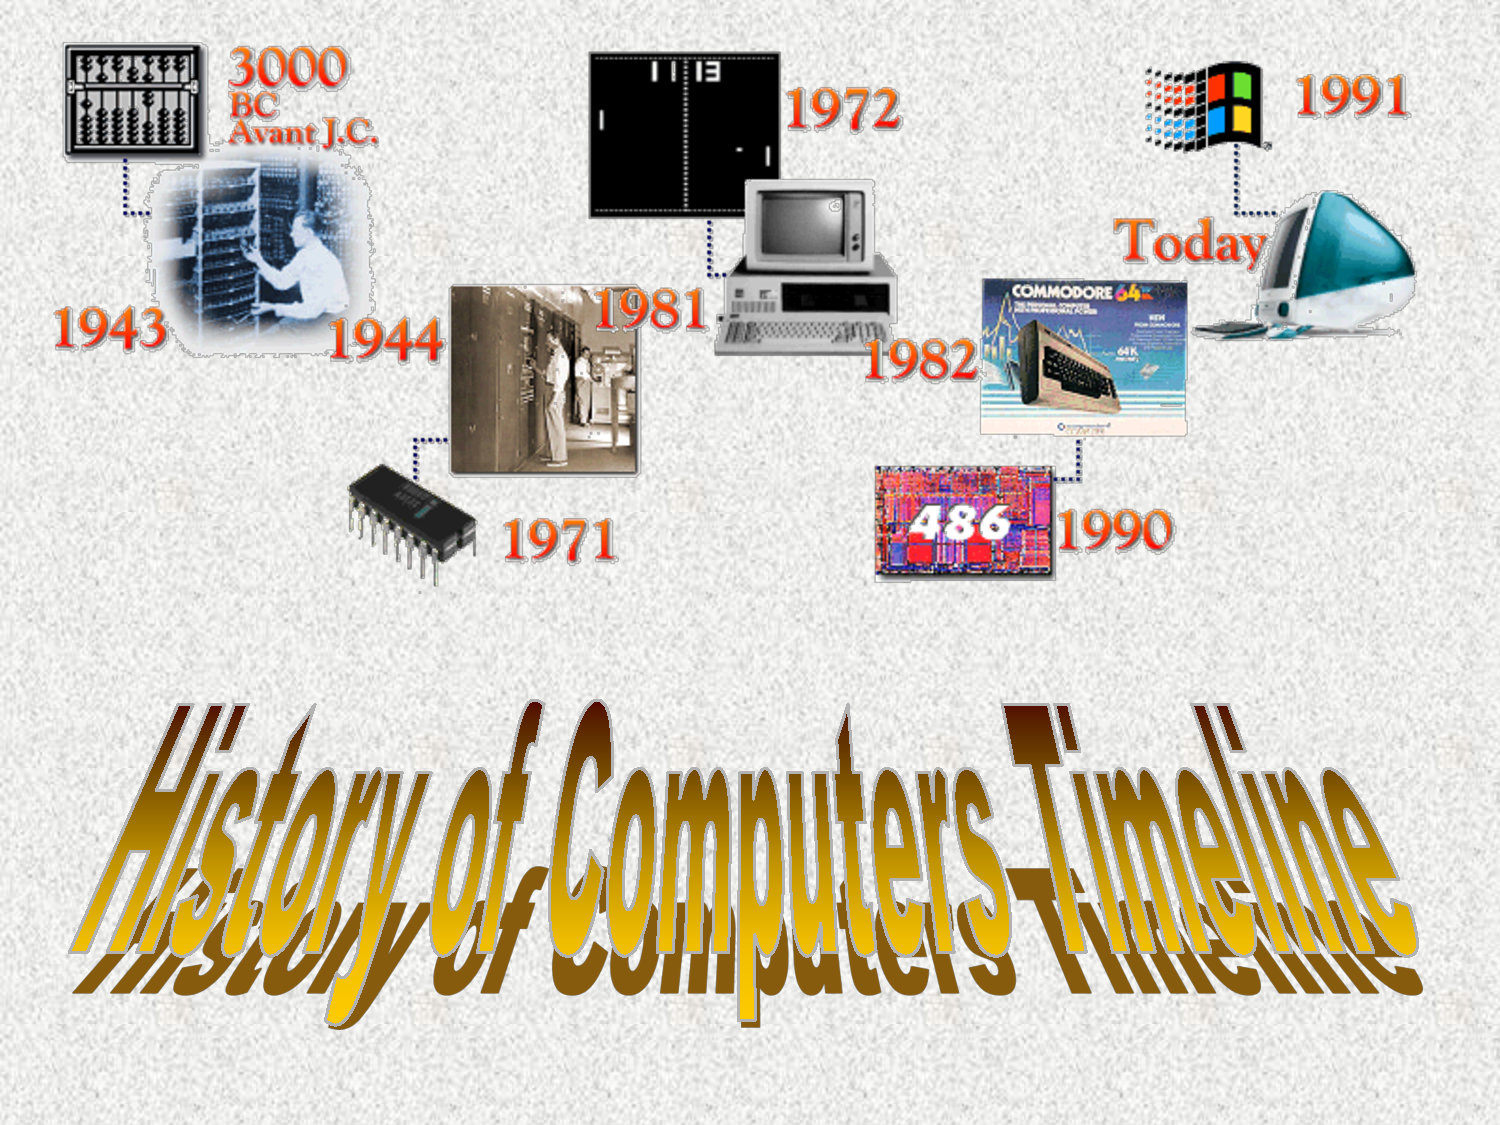 the history of computers and how it all began